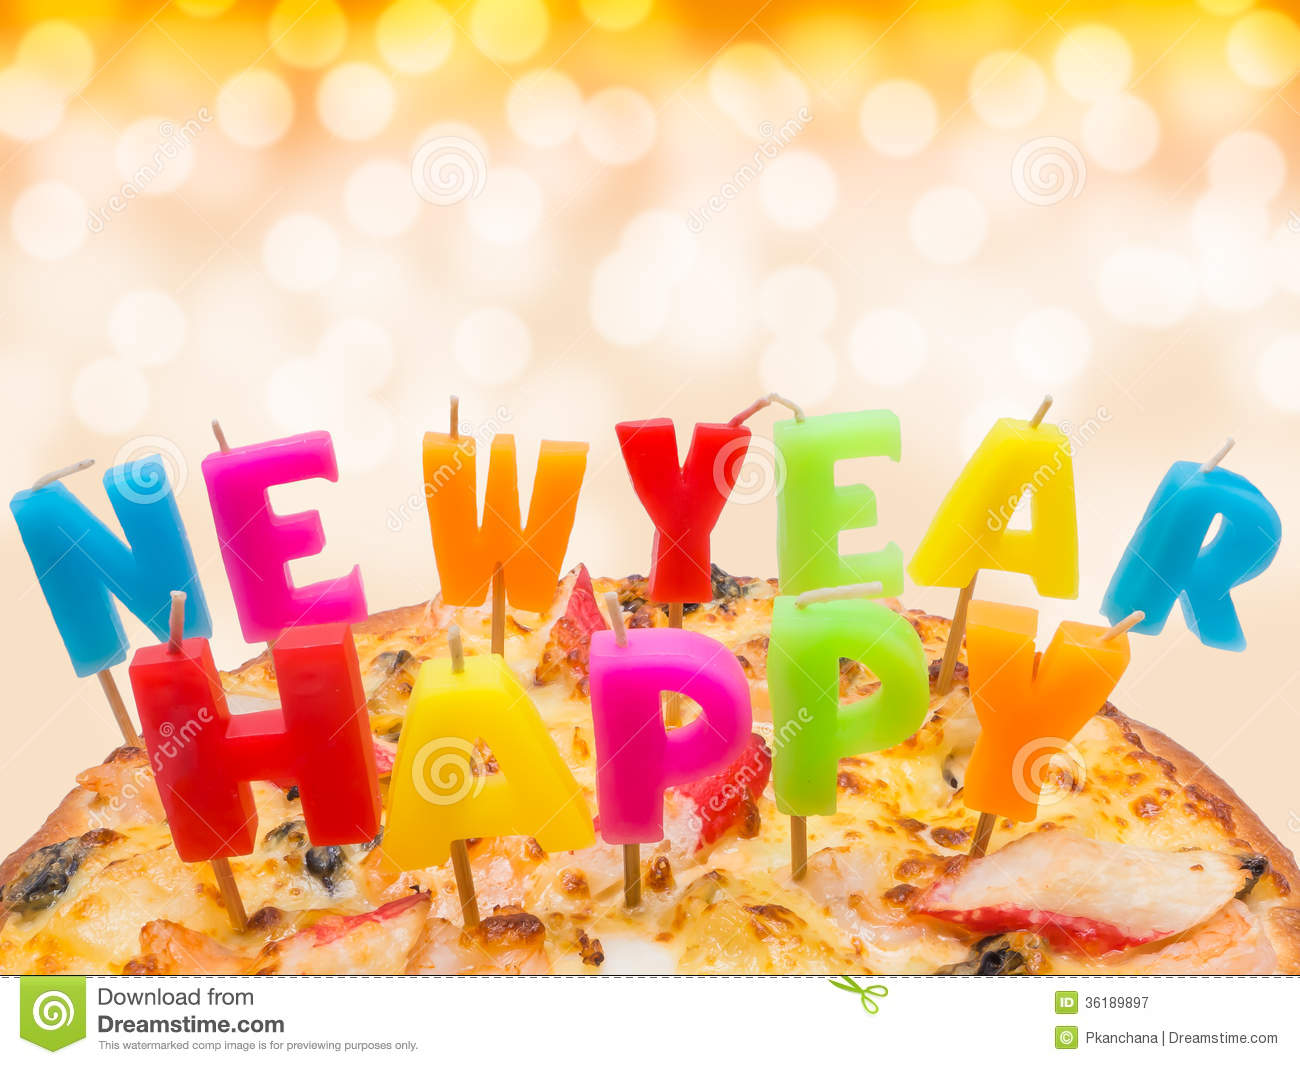 https://thumbs.dreamstime.com/z/pizza-candles-happy-new-year-colorful-36189897.jpg